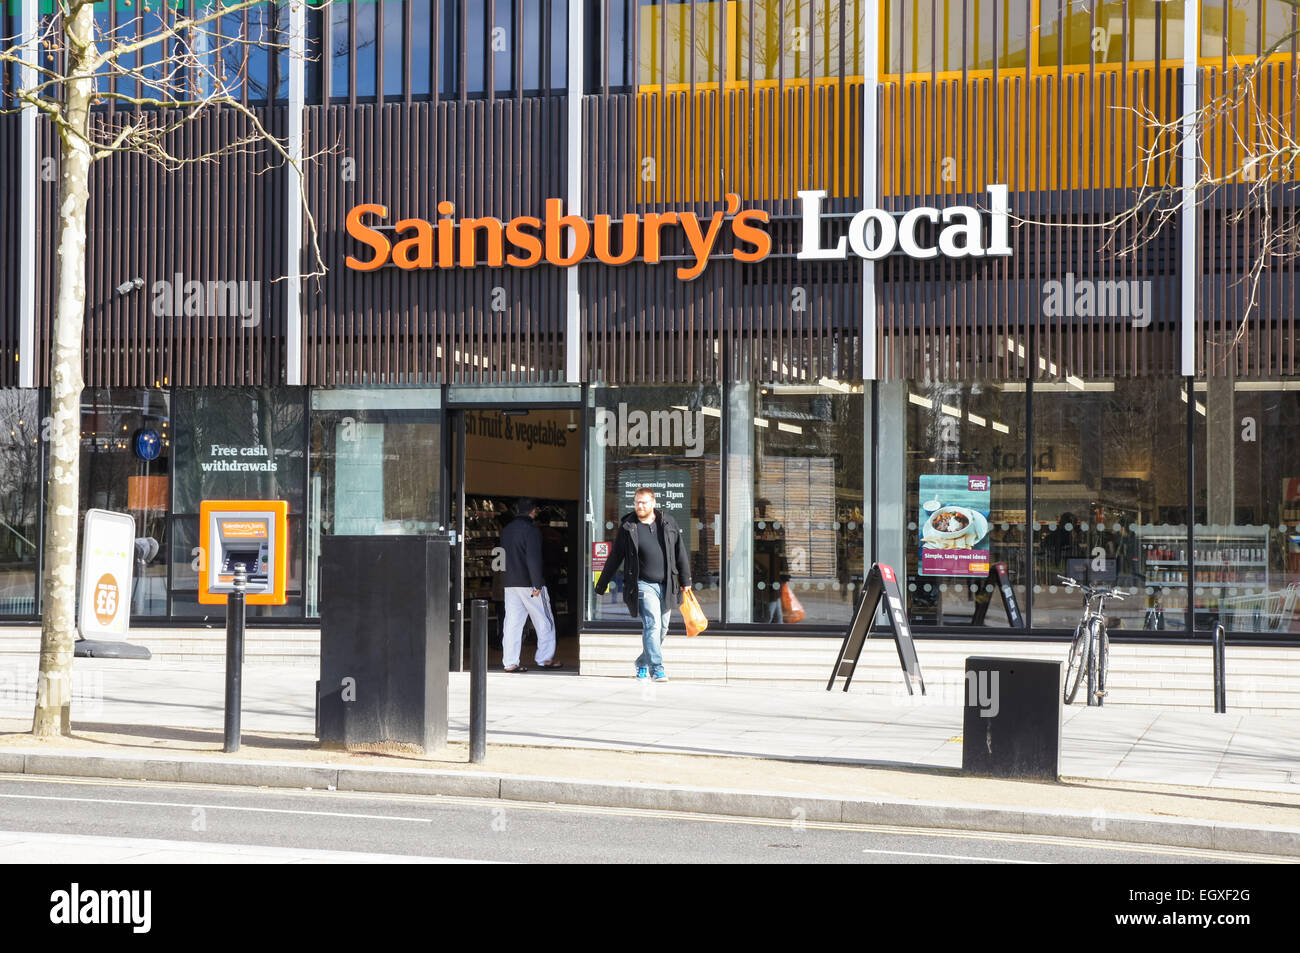 Prepossessing Sainsburys Logo Stock Photos  Sainsburys Logo Stock Images  Alamy With Handsome Sainsburys Local Store In East Village London Development Stratford E  London England United Kingdom Uk With Awesome Concrete Garden Sleepers Also Black Garden Table In Addition Cheap Garden Arbours And Monty Don Gardens As Well As Magic Garden Hose Additionally Garden Swing Slide From Alamycom With   Handsome Sainsburys Logo Stock Photos  Sainsburys Logo Stock Images  Alamy With Awesome Sainsburys Local Store In East Village London Development Stratford E  London England United Kingdom Uk And Prepossessing Concrete Garden Sleepers Also Black Garden Table In Addition Cheap Garden Arbours From Alamycom